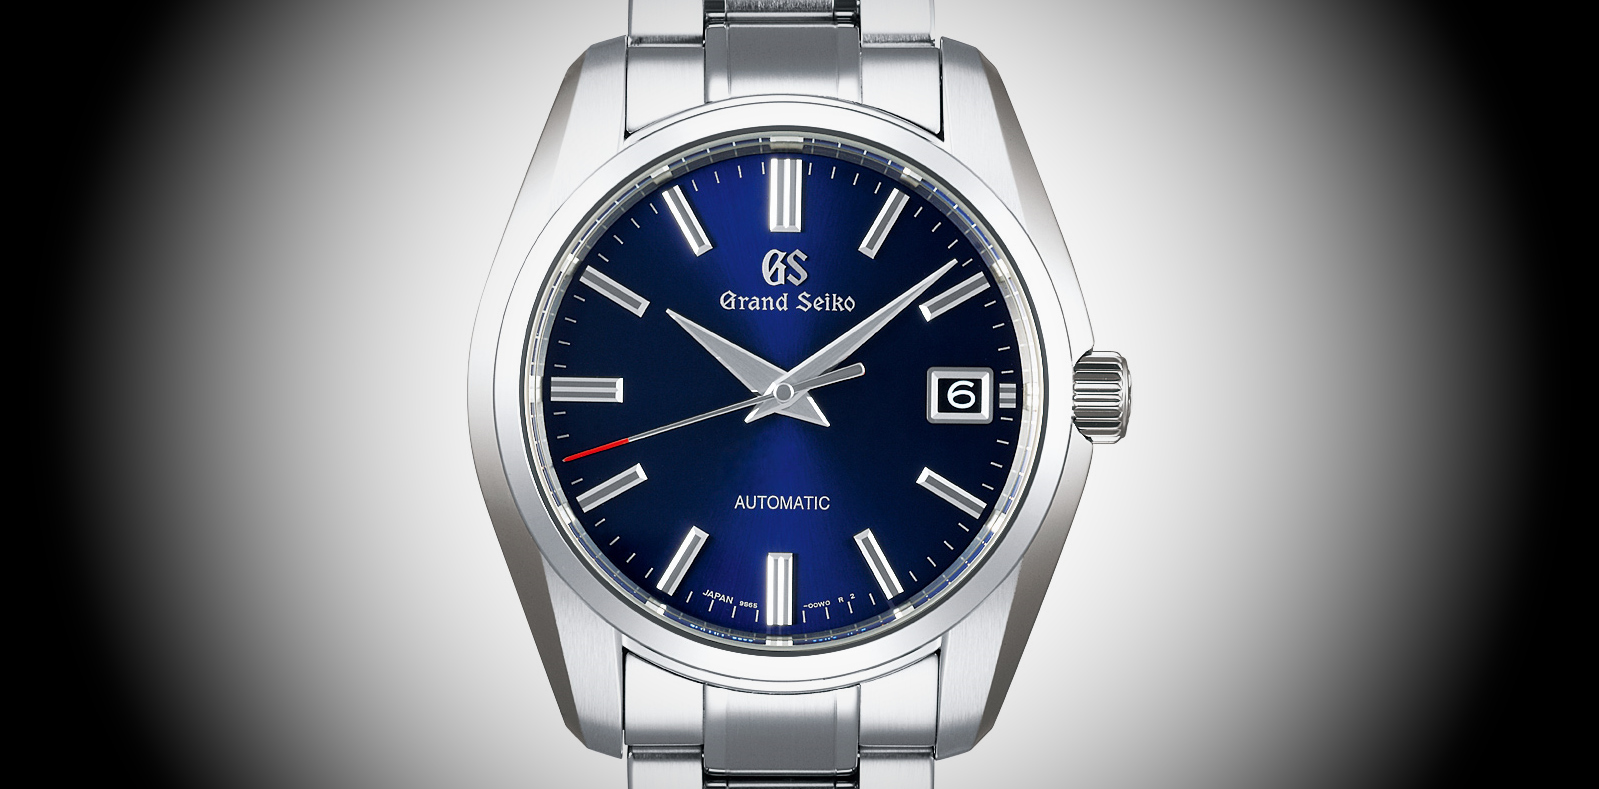 Grand Seiko's special relationship with nature